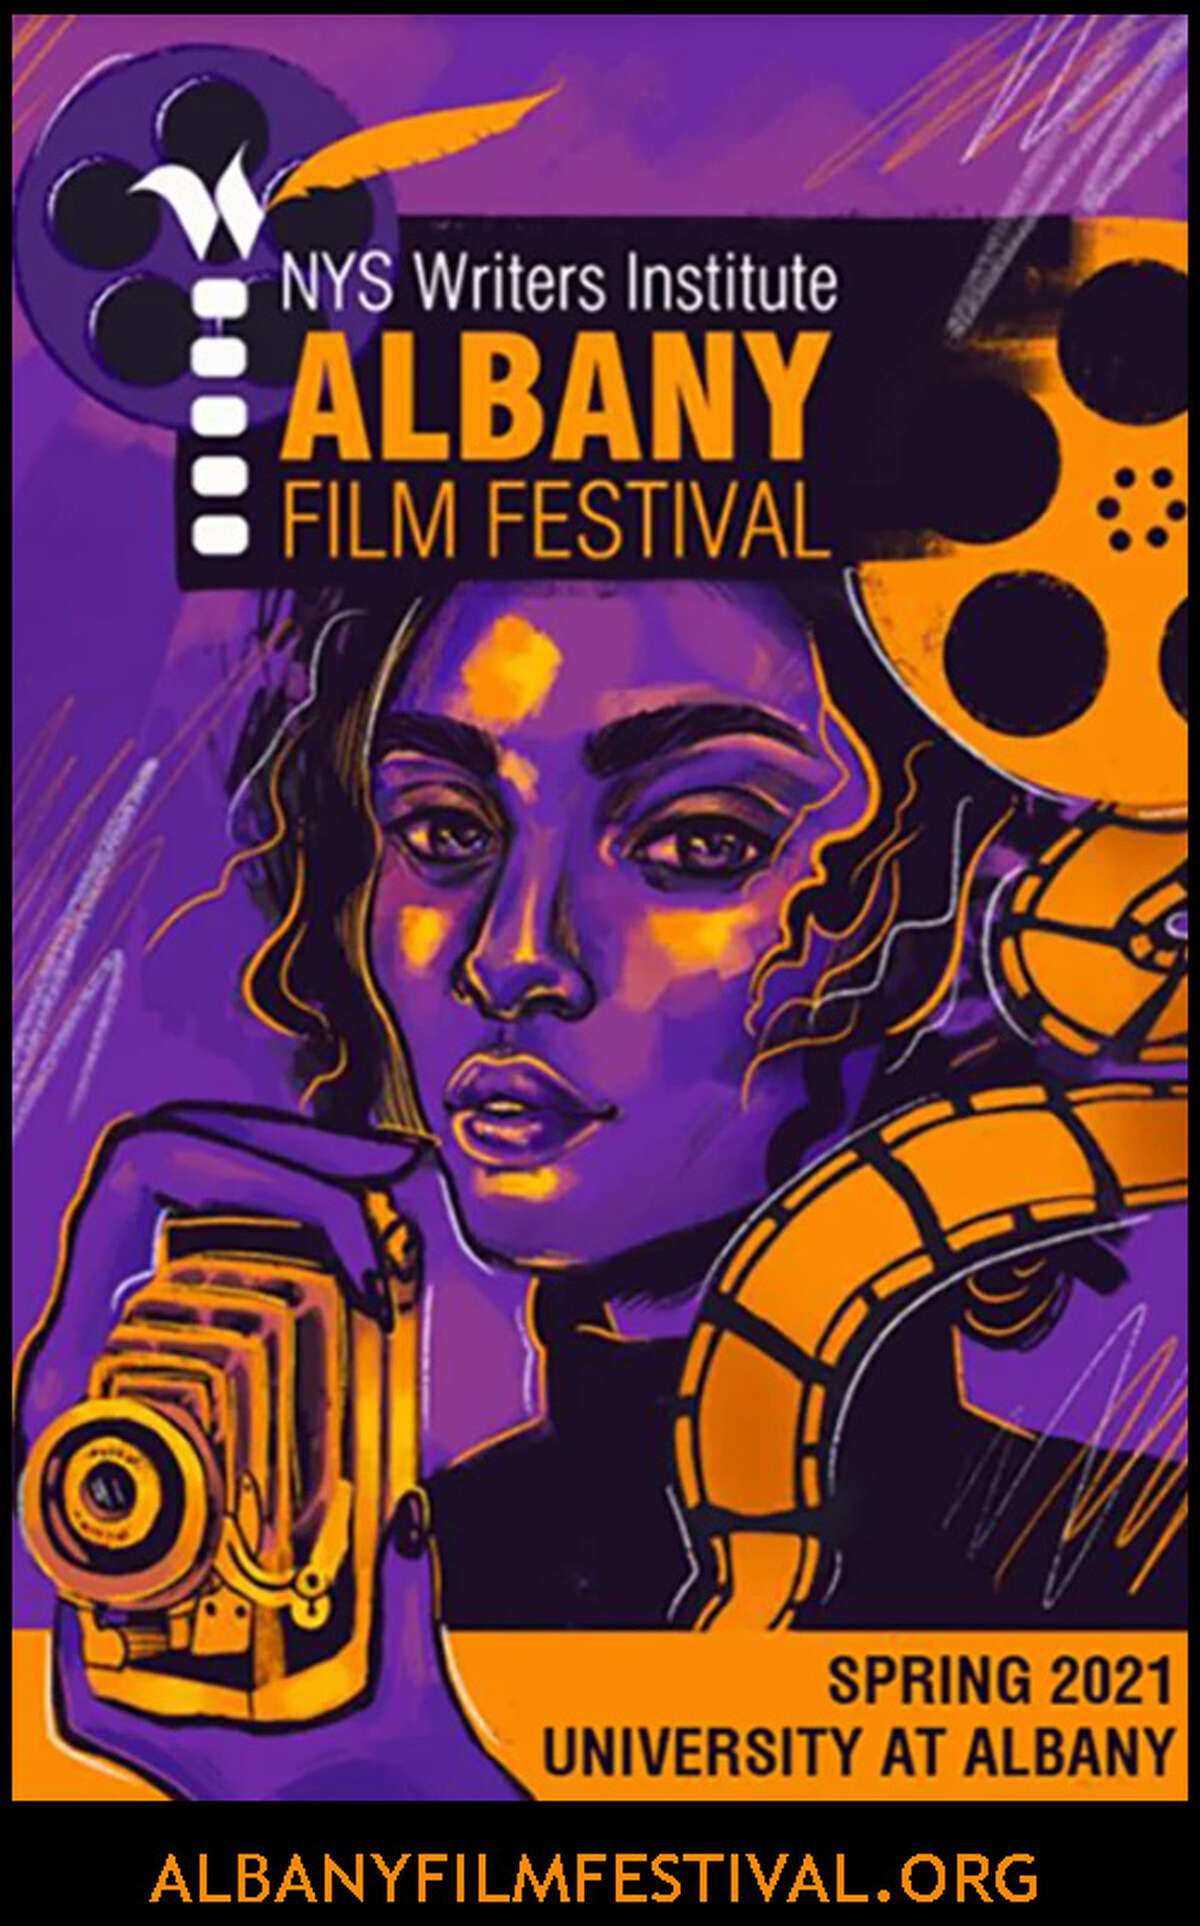 The poster for the inaugural Albany Film Festival, sponsored by the New York State Writers Institute and being held in person and online from April 24 through May 3. (Provided photo.)